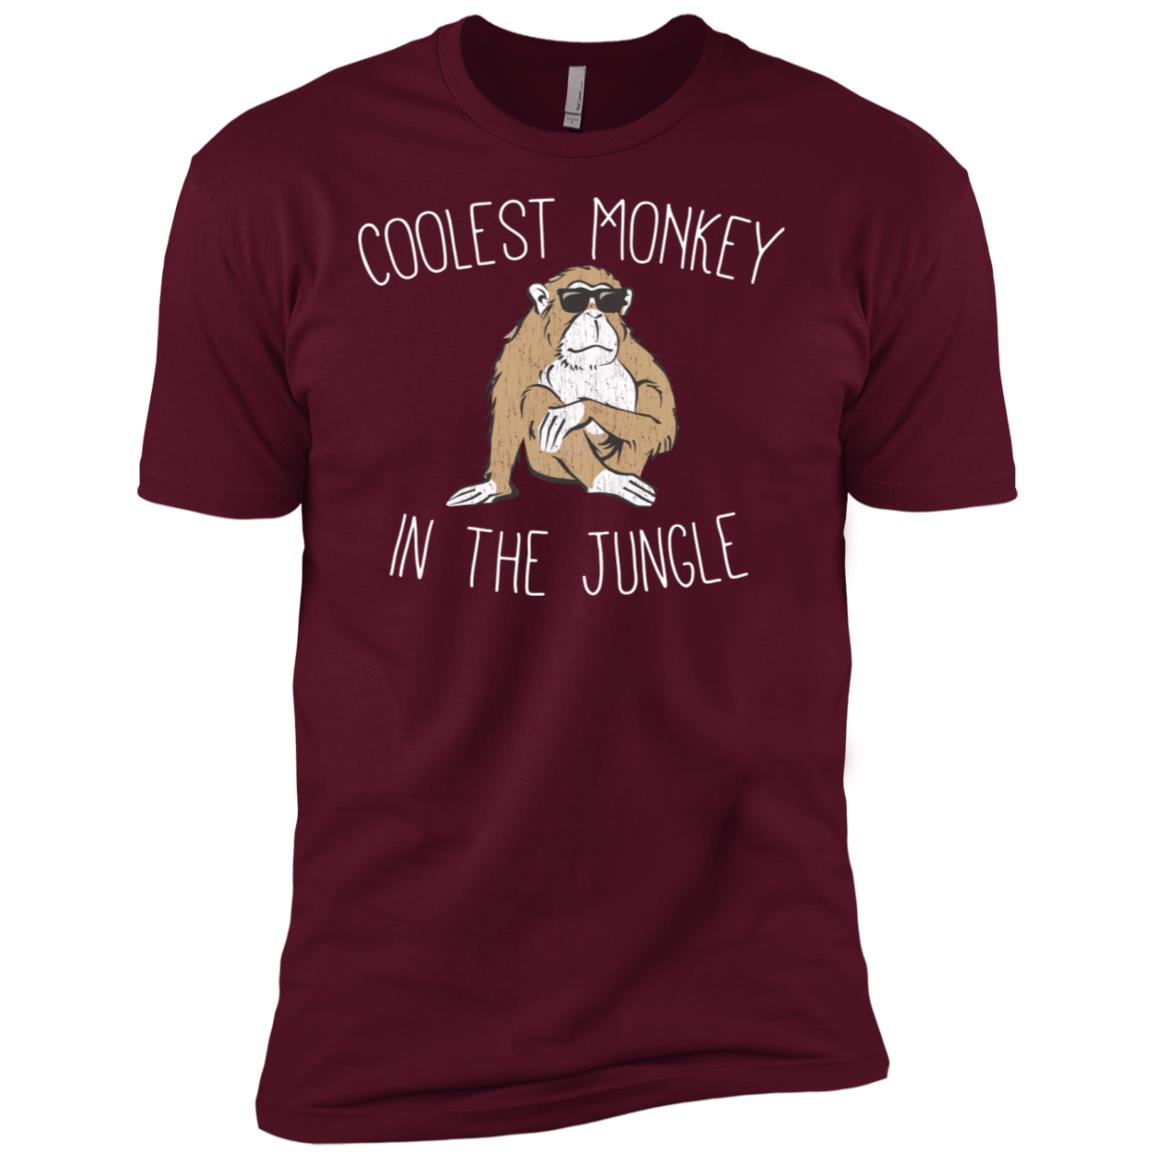 The Coolest Monkey in the Jungle Funny Tee Men Short Sleeve T-Shirt